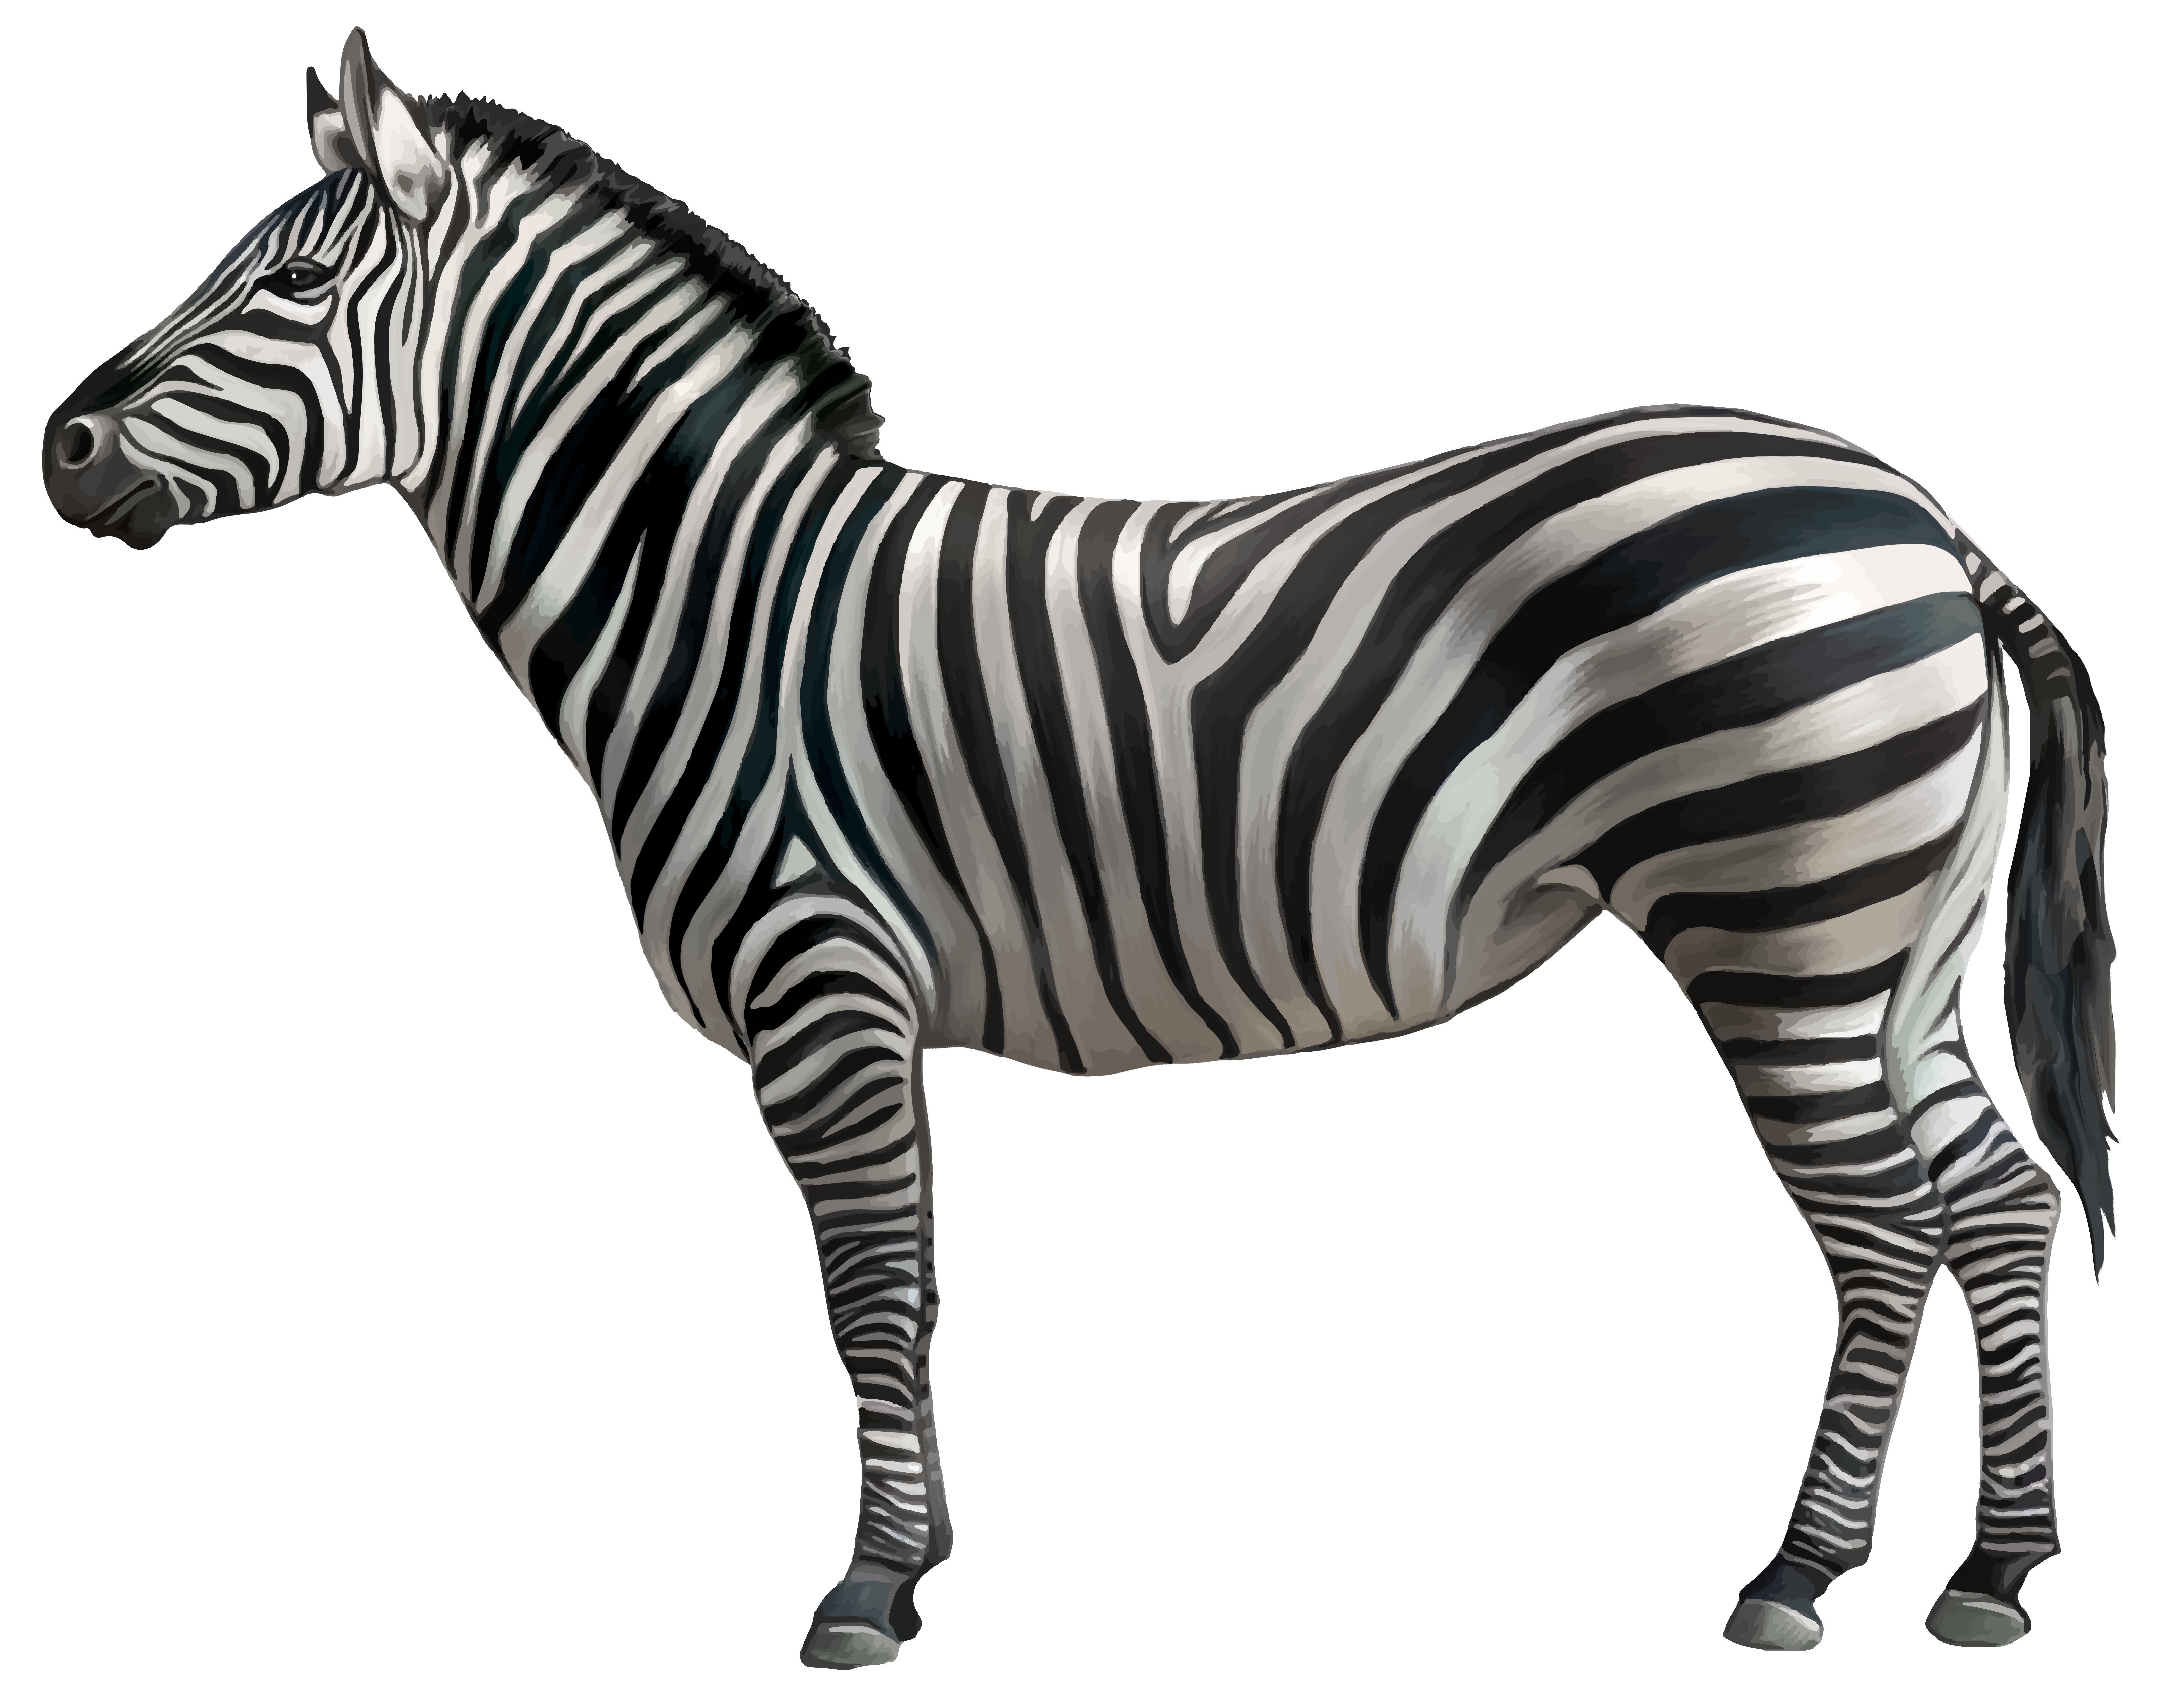 Zebra border png. Clipart image gallery yopriceville